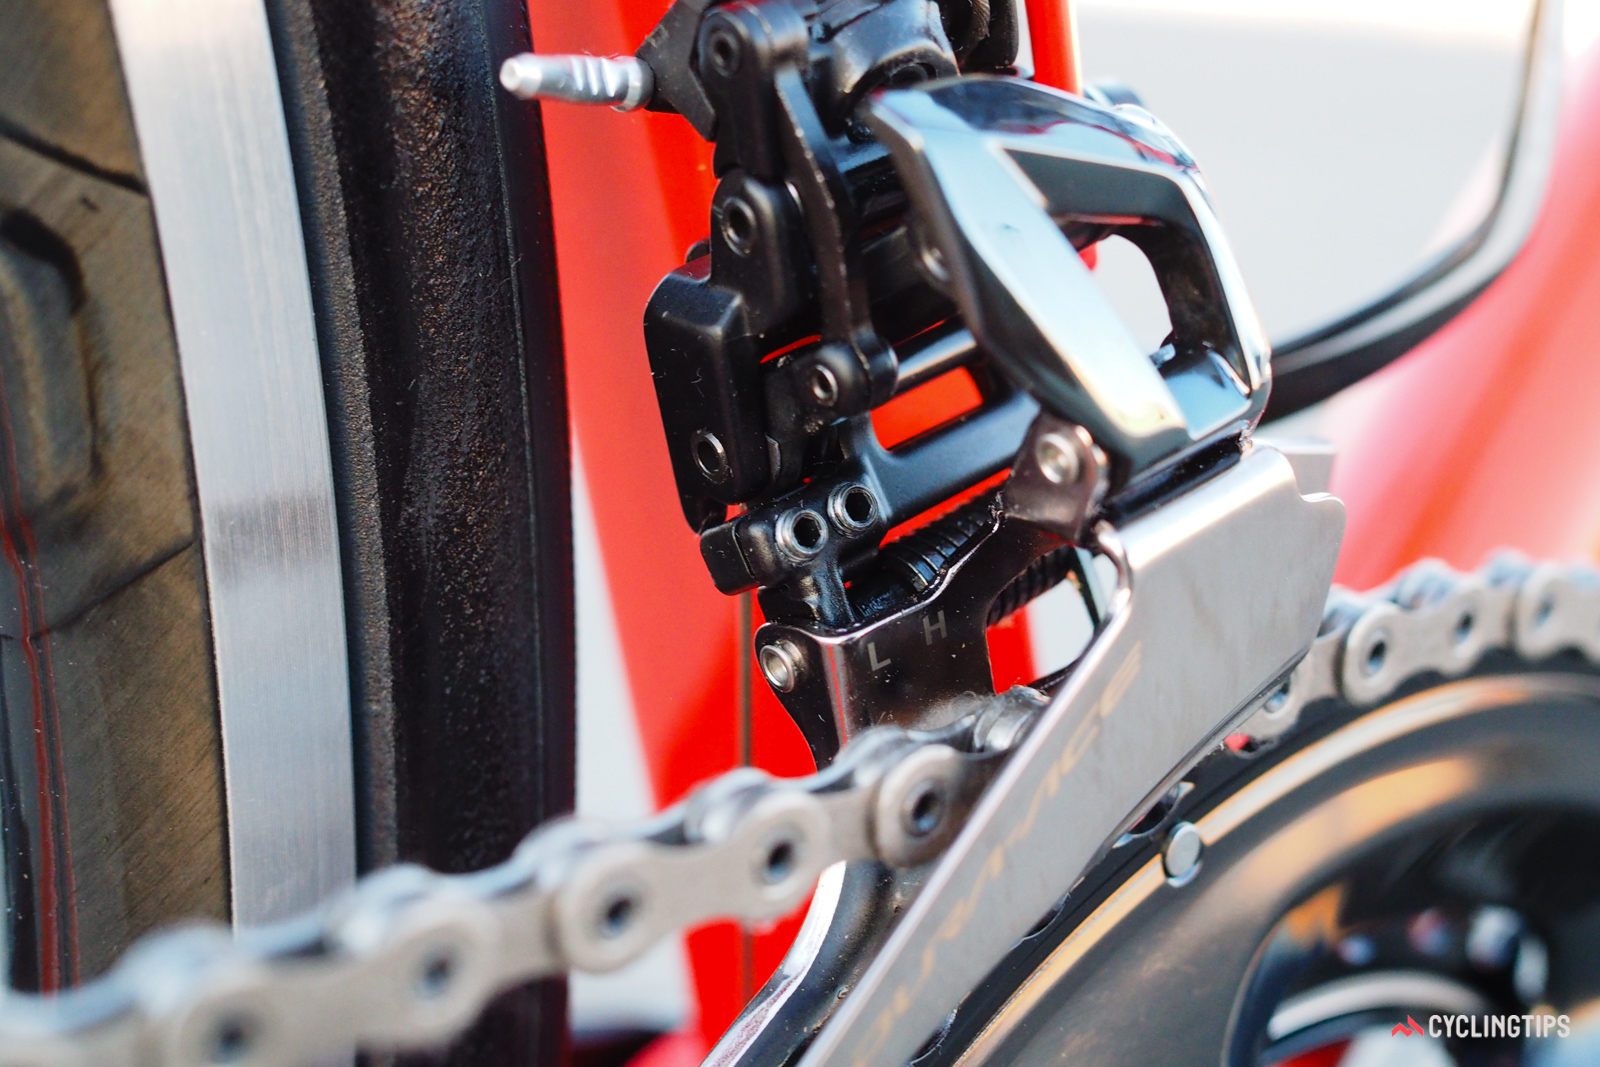 Limit screws are clearly marked and admirably tiny. Hidden from view is the support bolt that braces the derailleur body against the seat tube for additional support and better shifting performance under load.